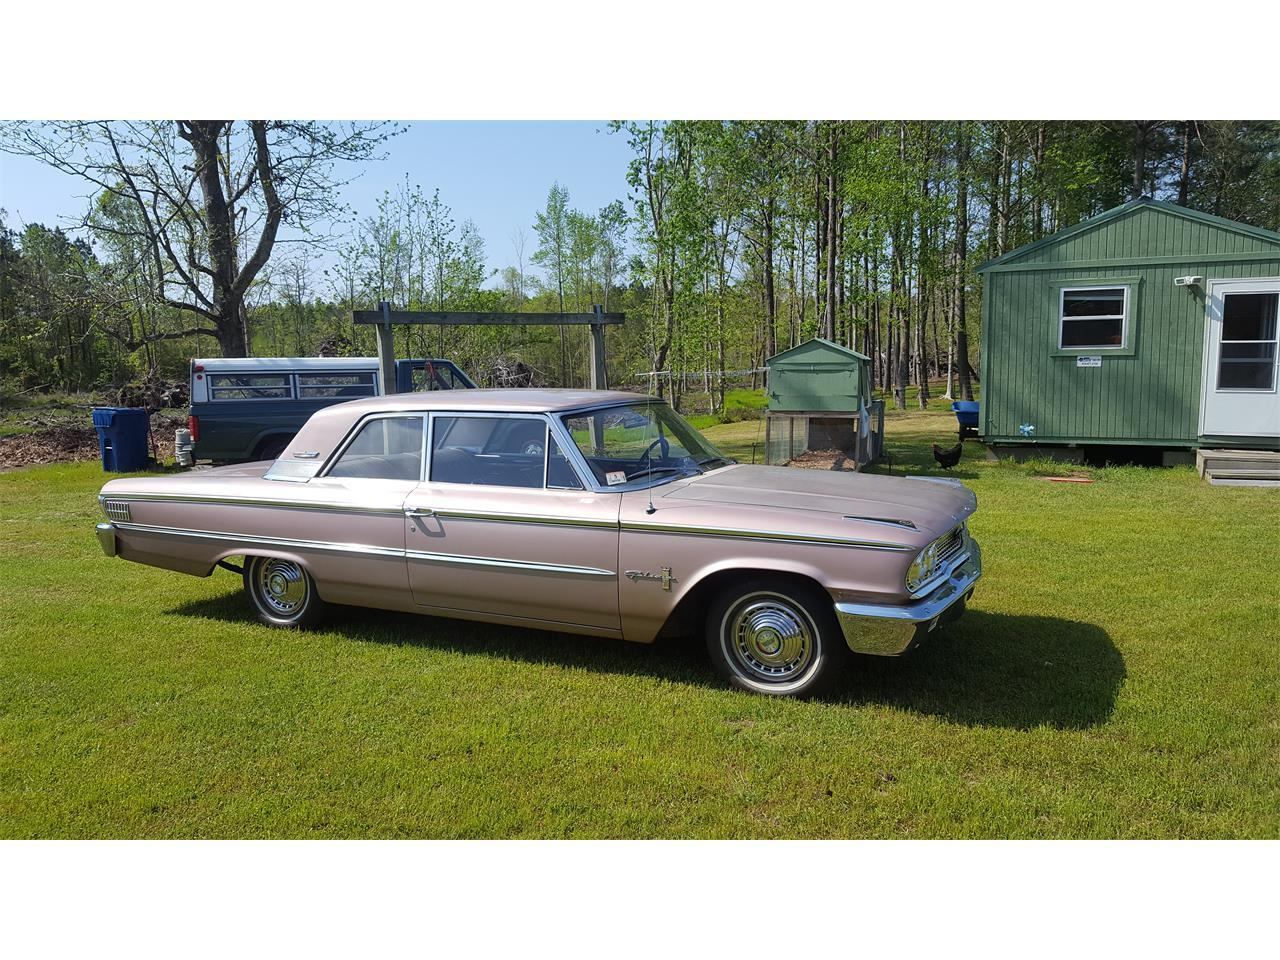 Large Picture of 1963 Ford Galaxie 500 XL located in BOLIVIA North Carolina - $10,000.00 Offered by a Private Seller - L9RF